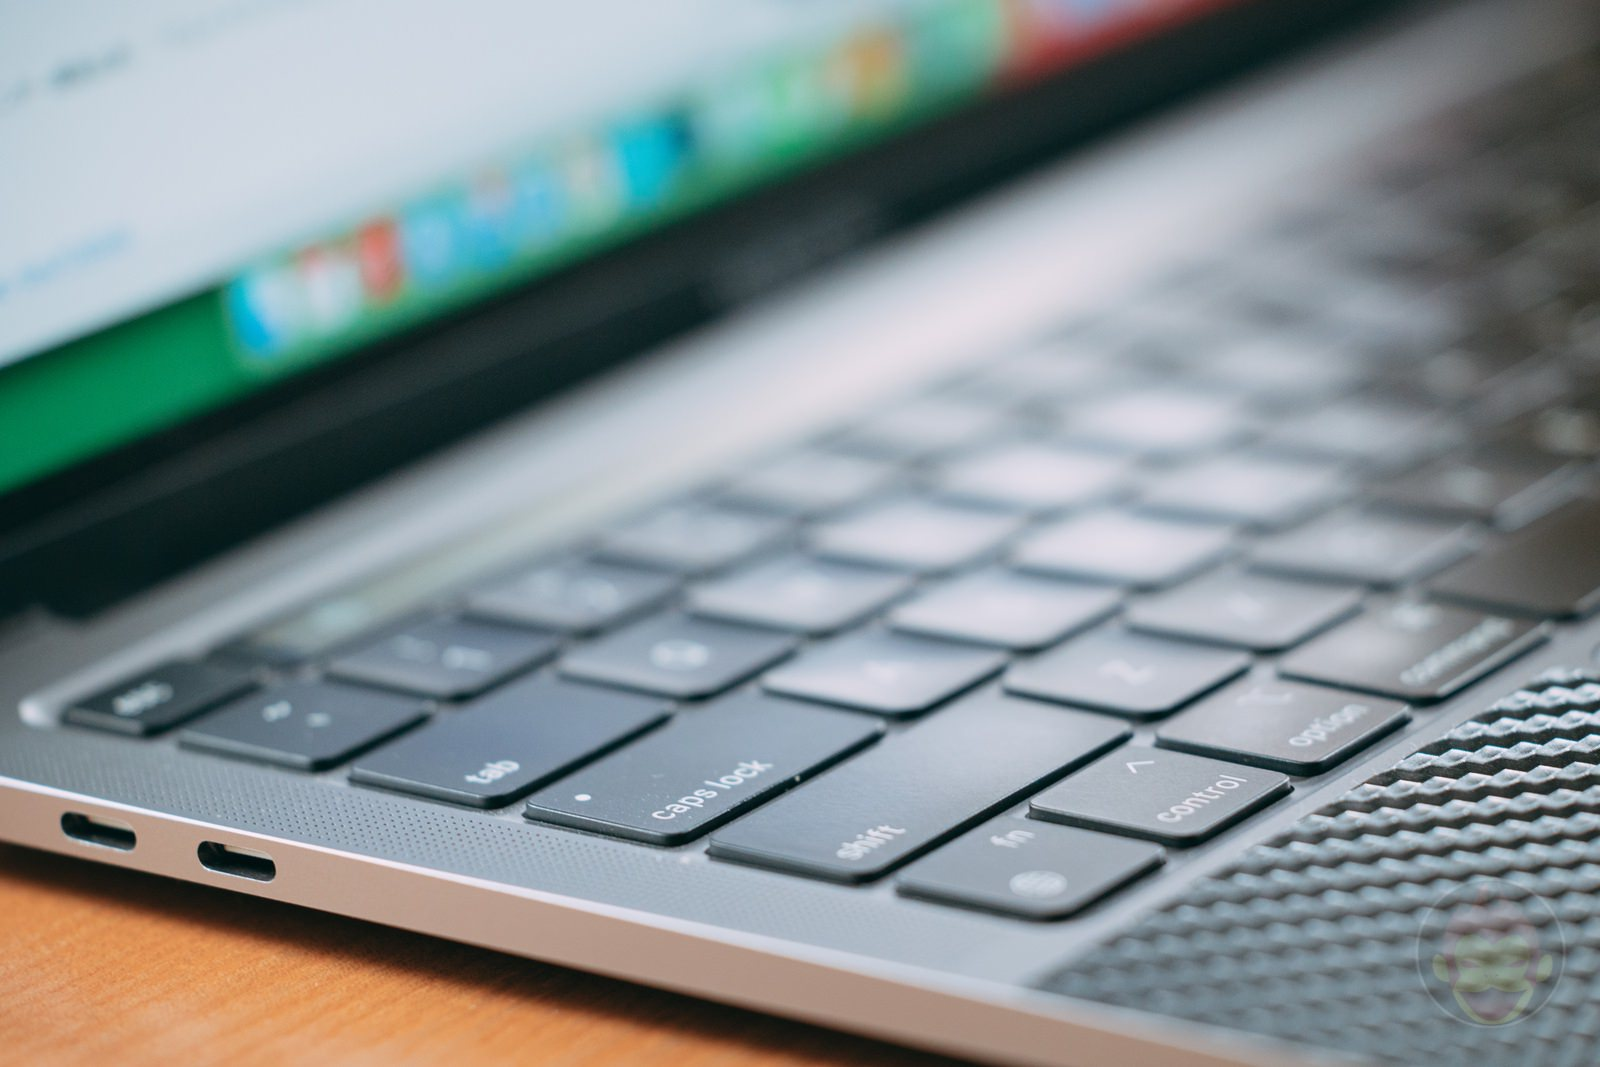 Using-only-MacBookPro-to-work-with-15.jpg